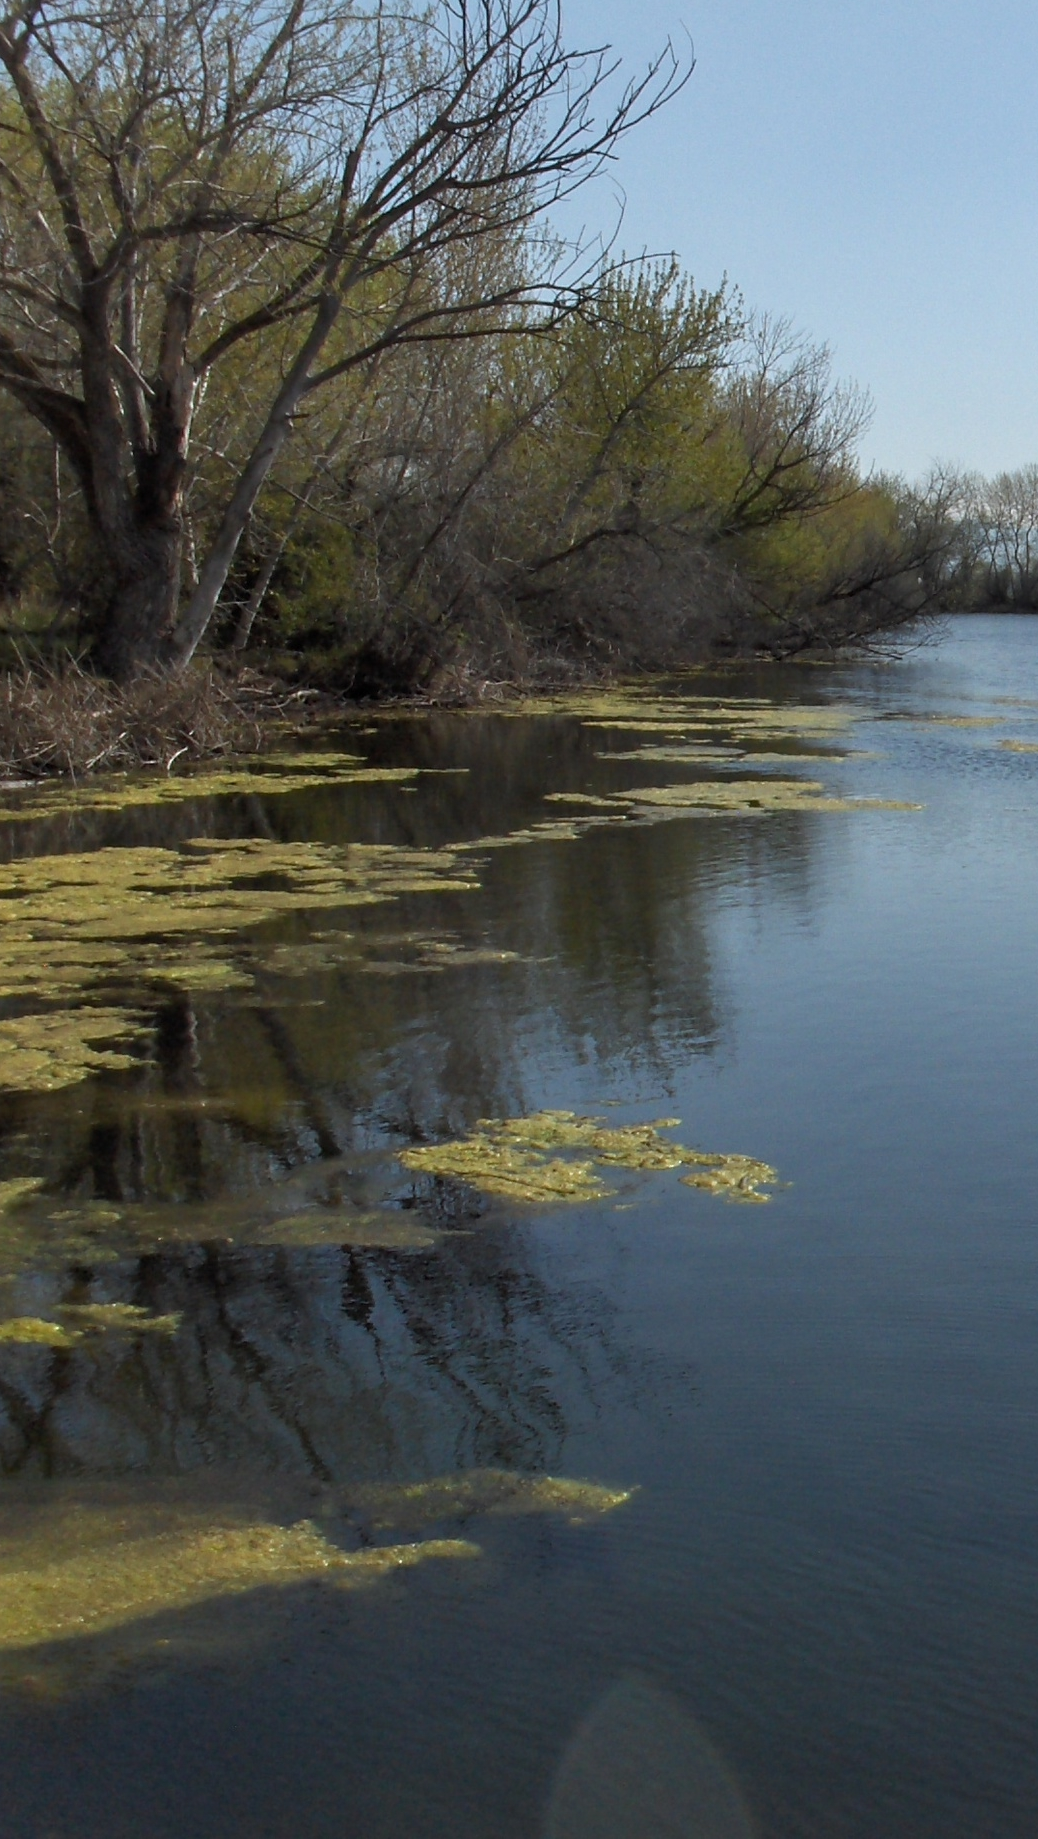 Nutrient pollution on the Boise River causes algae blooms like the one pictured above.